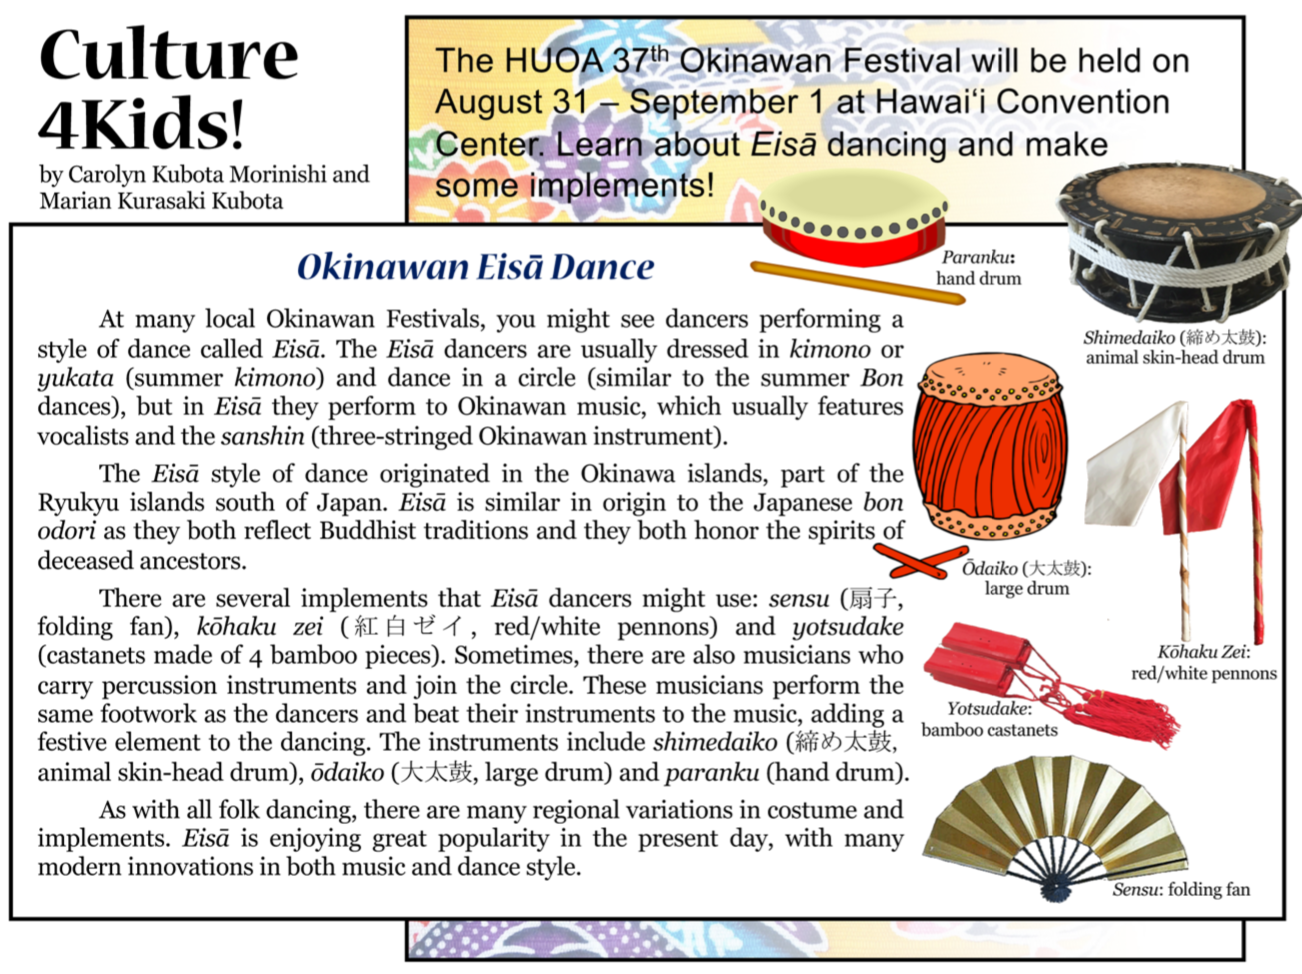 Culture4Kids, 8/16/219 issue 'Okinawan Eisa Dance'